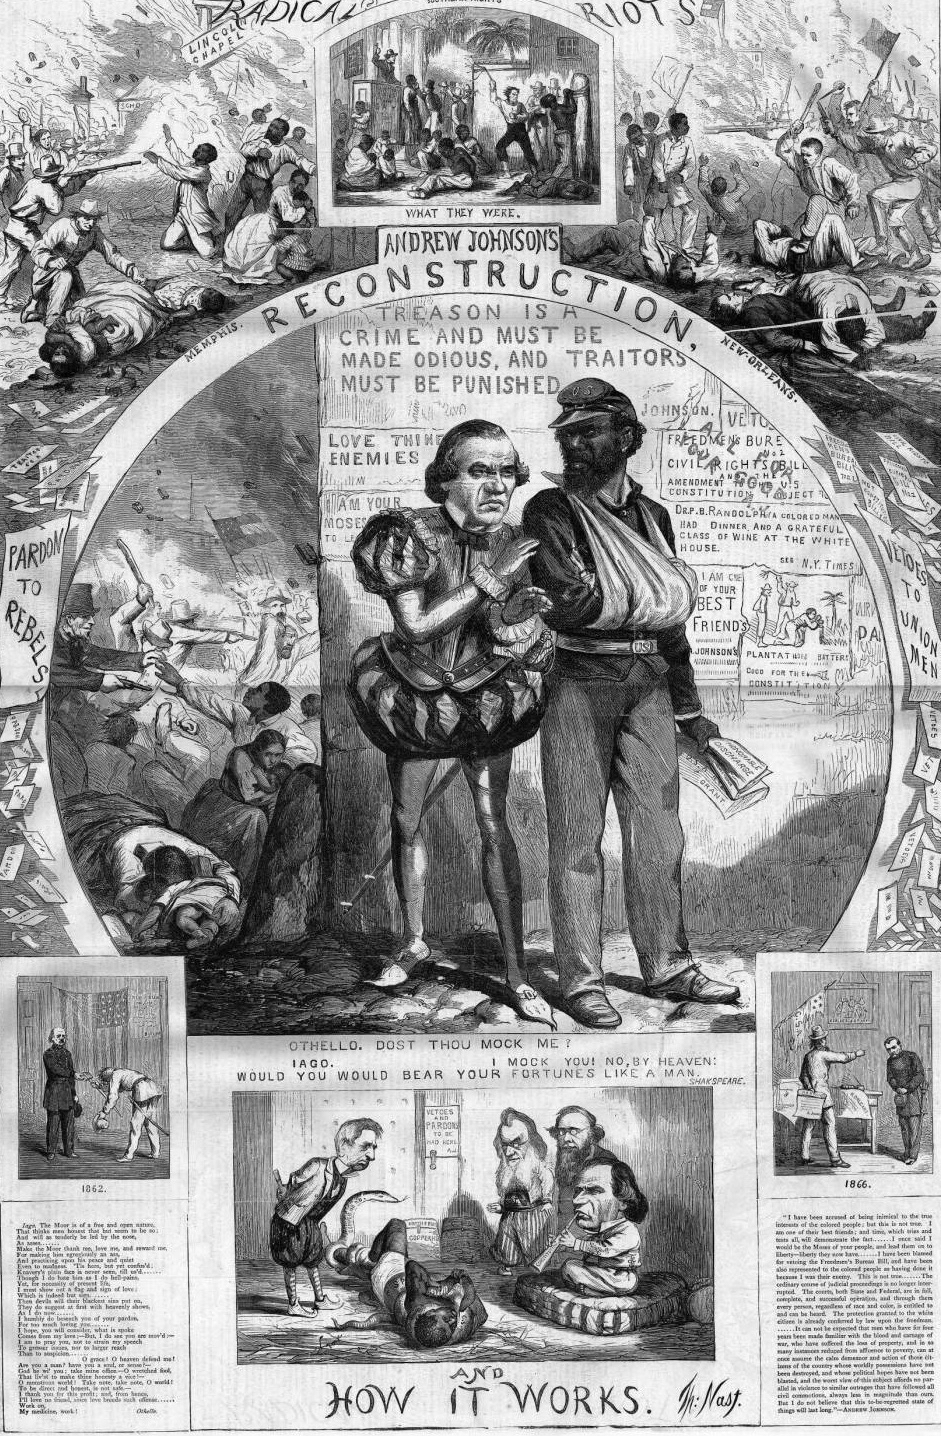 """Thomas Nast, """"Reconstruction and How It Works,"""" Harper's Weekly, 1866, via HarpWeek."""